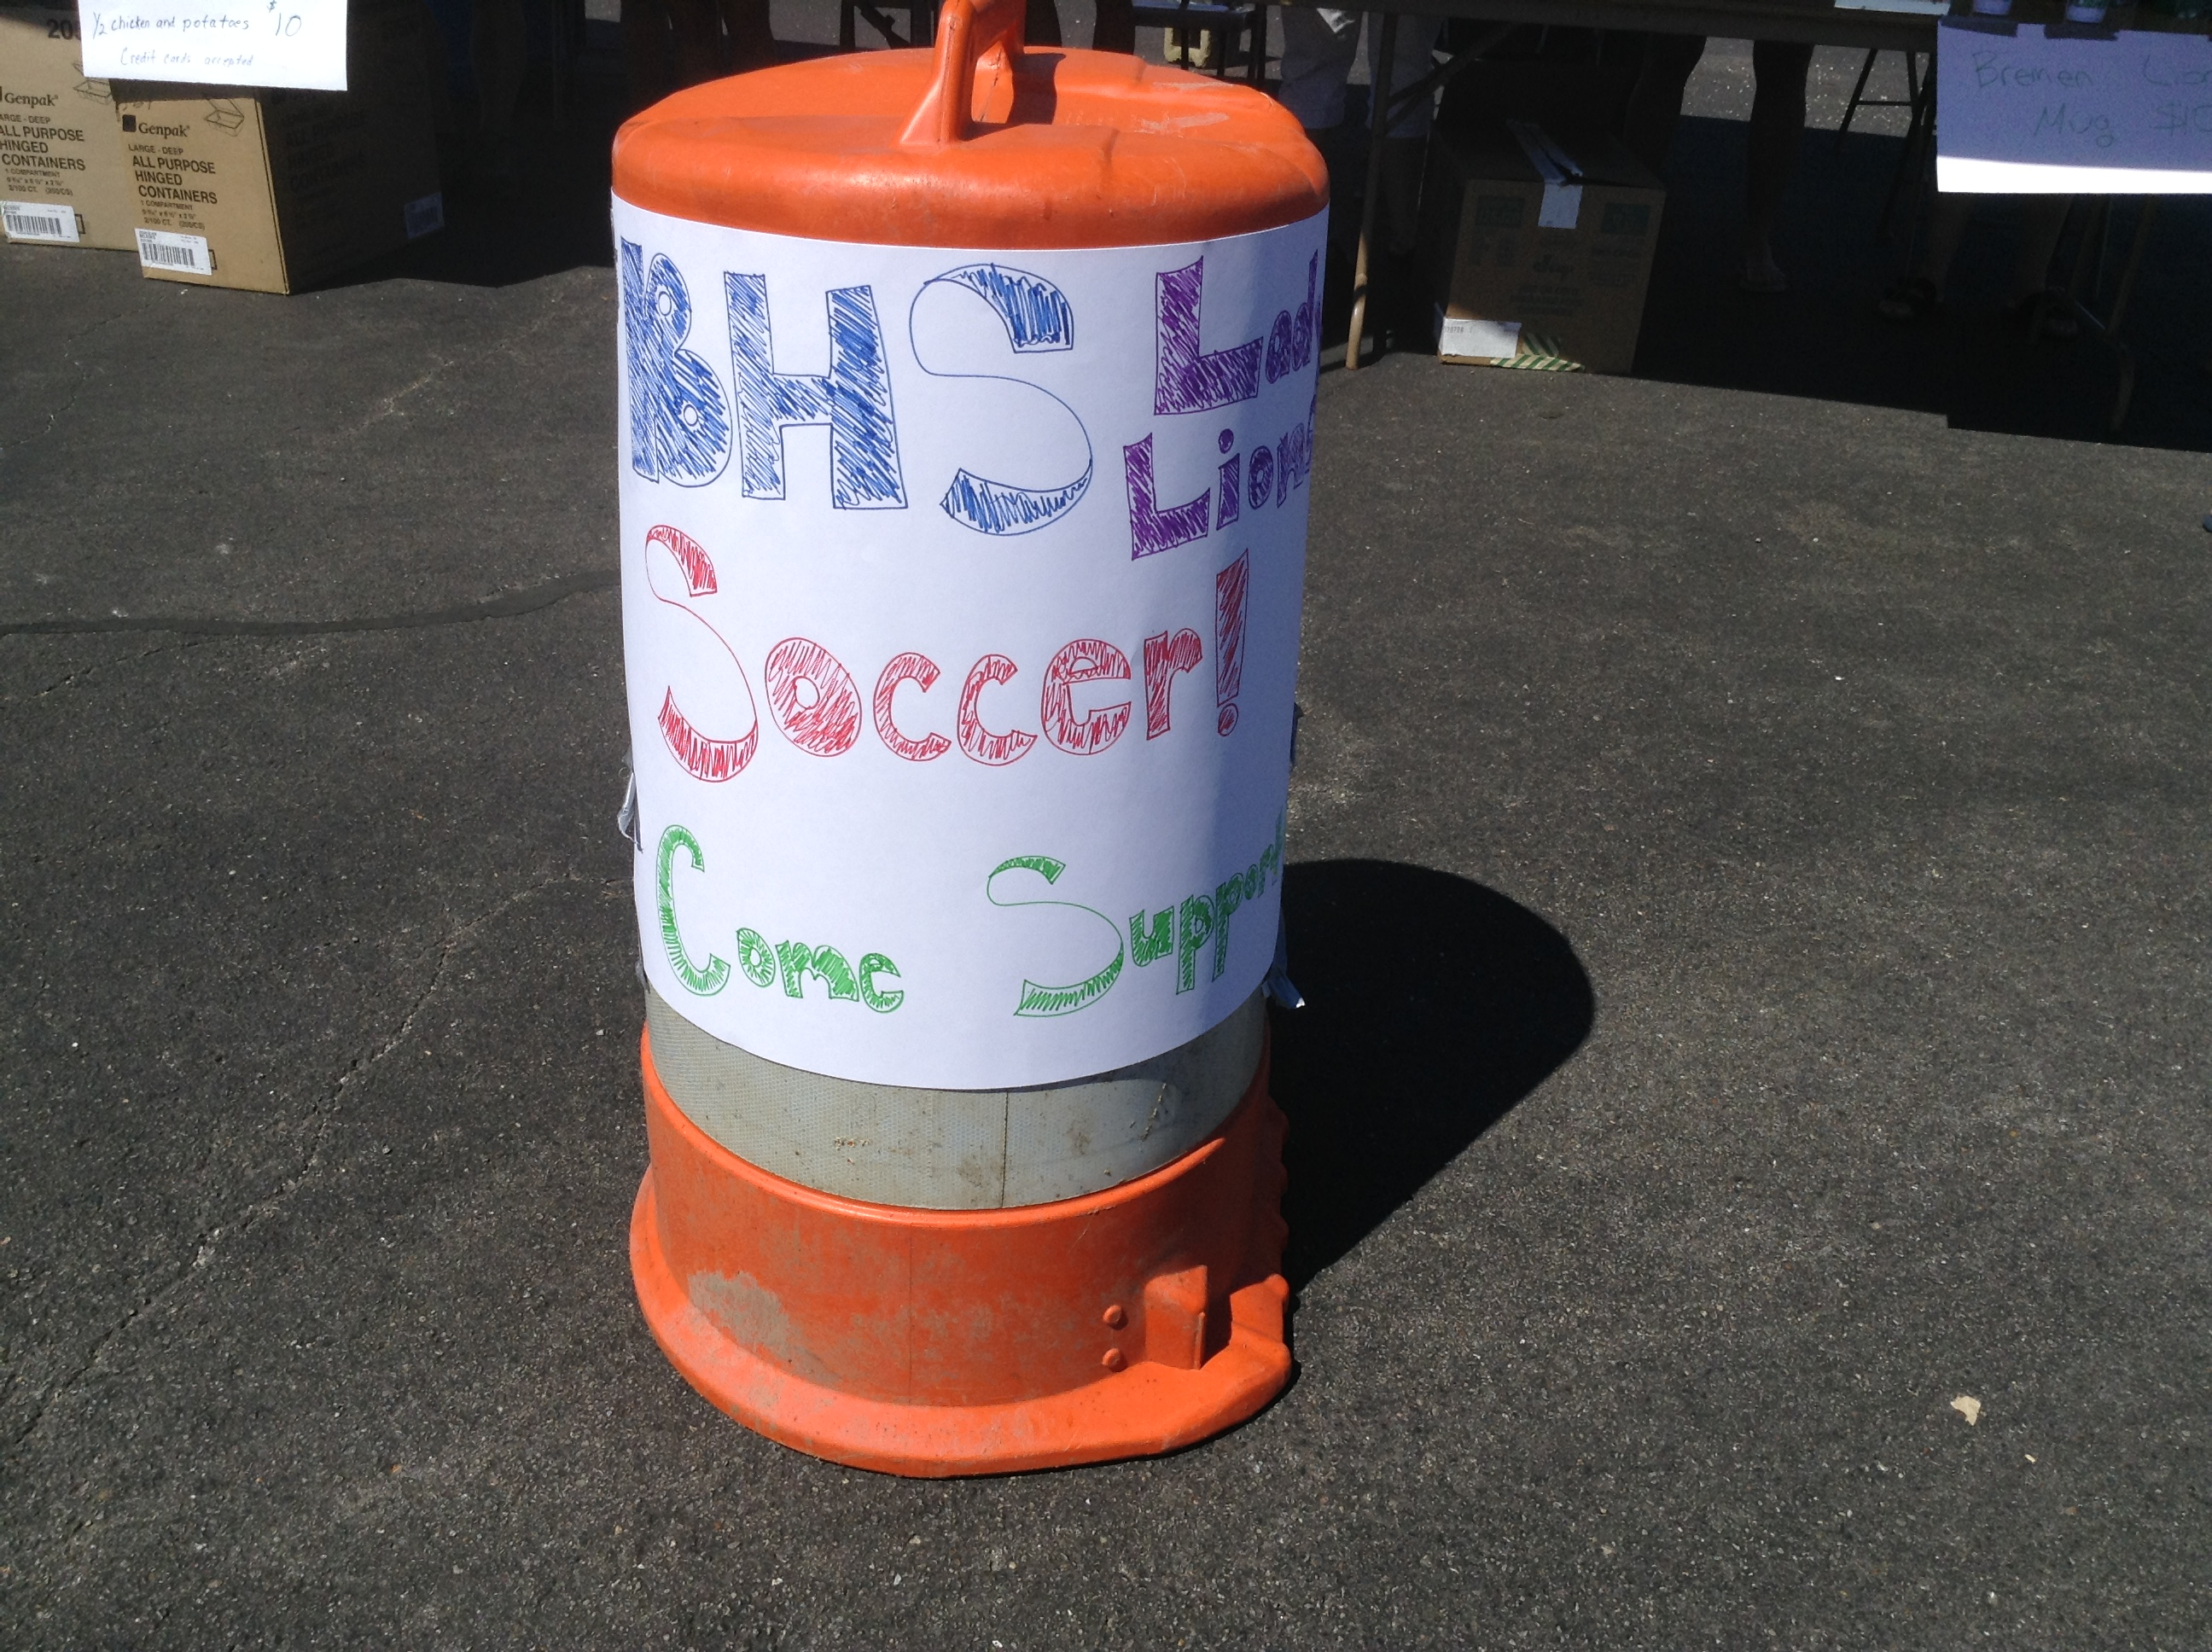 Lunch was in Support of the Bremen High School Soccer Team.